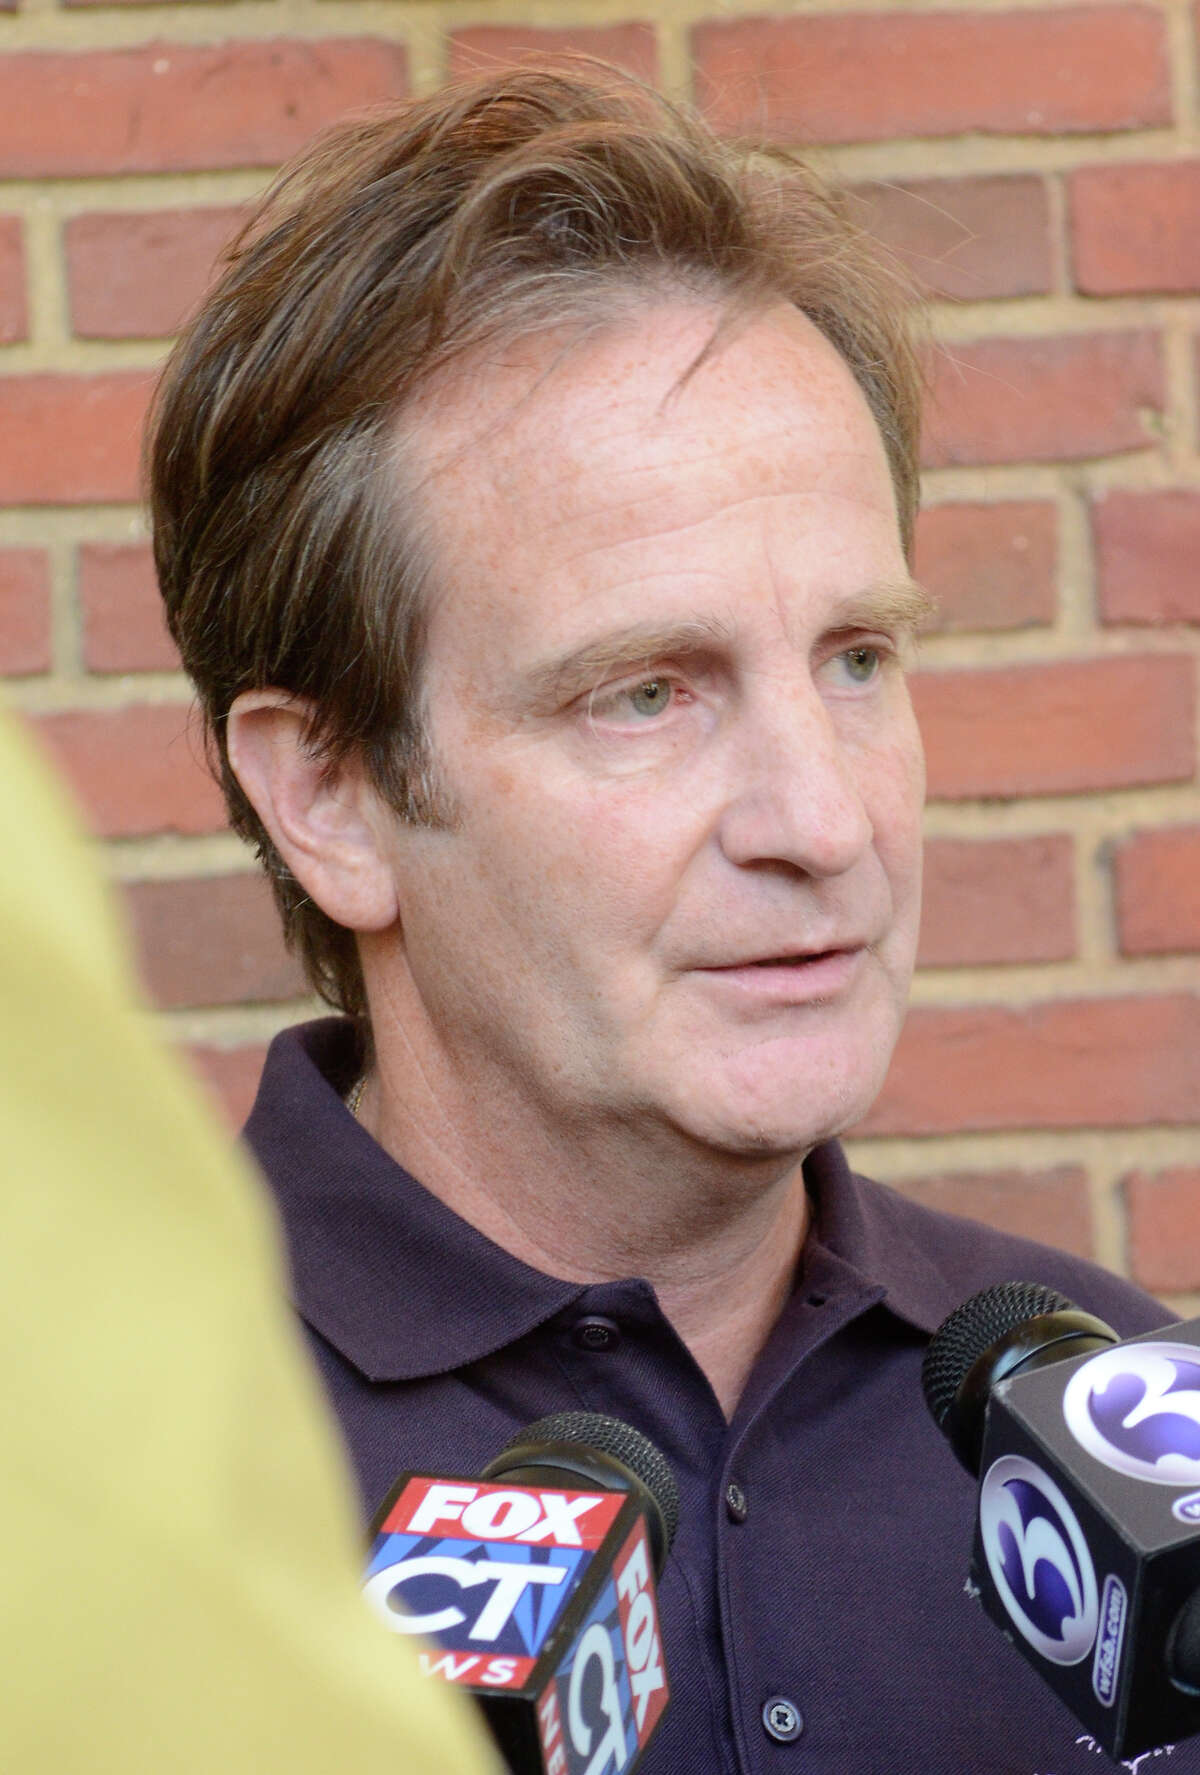 Matthew Badger speaks to reporters outside the Manice Lockwood Mansion in Norwalk, CT. Badger spoke at a benefit there later to raise funds to support the arts in Norwalk schools, through the LilySarahGrace Fund, on Sept. 13, 2012. The LilySarahGrace Fund was founded in honor of Lily, Sarah and Grace Badger who lost their lives last year in a Christmas day fire at their home in Stamford, CT. Thursday's benefit event, called Art 'n Bloom, showcased the art of 13 Norwalk artists, all of whom are members of St. Philip Artists Guild.